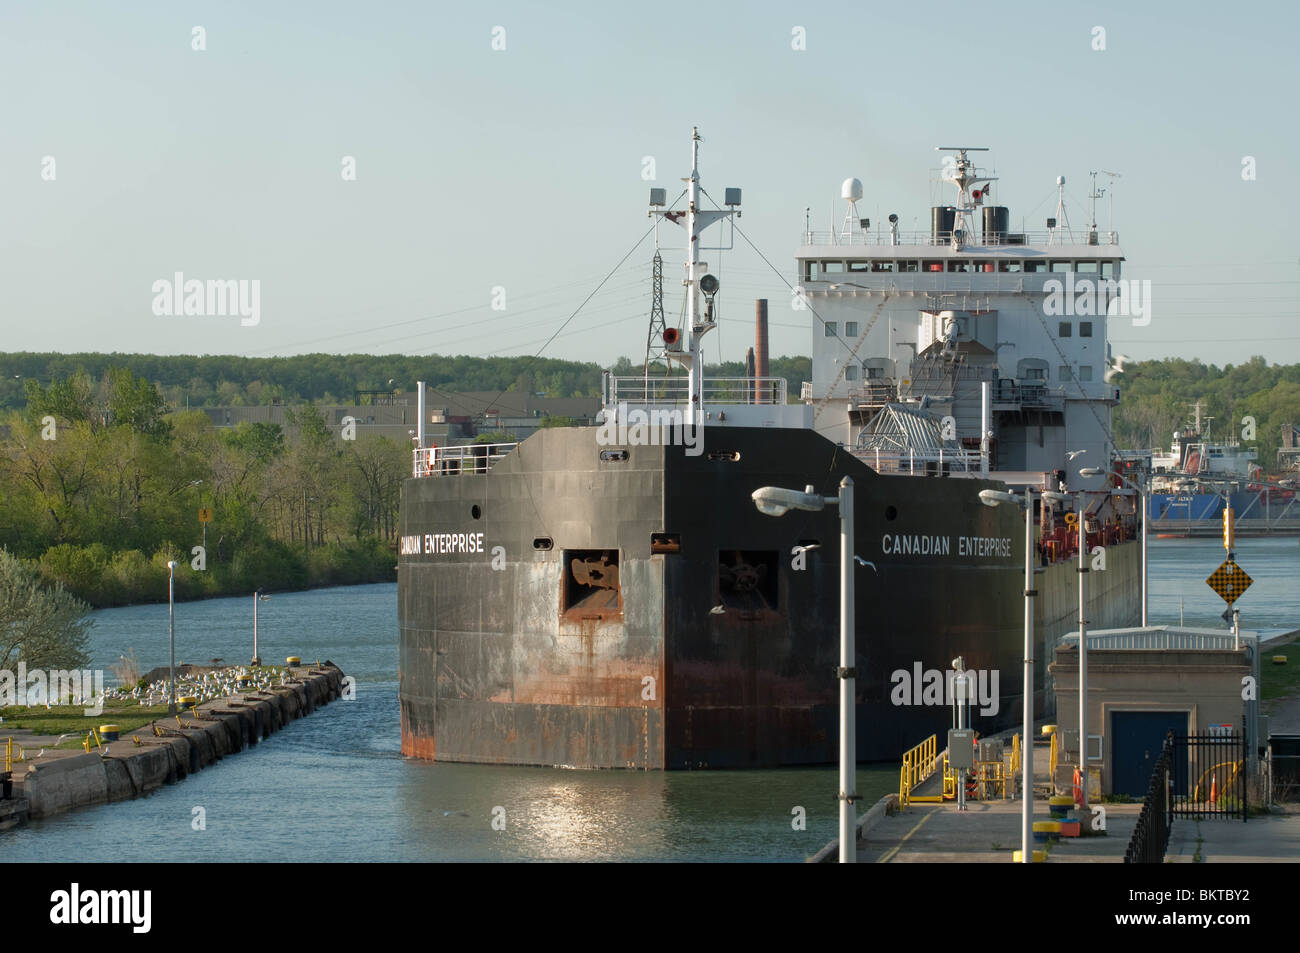 Great Lakes bulk cargo Carrier maneouvers to enter Lock 3 of the Welland Canal. - Stock Image